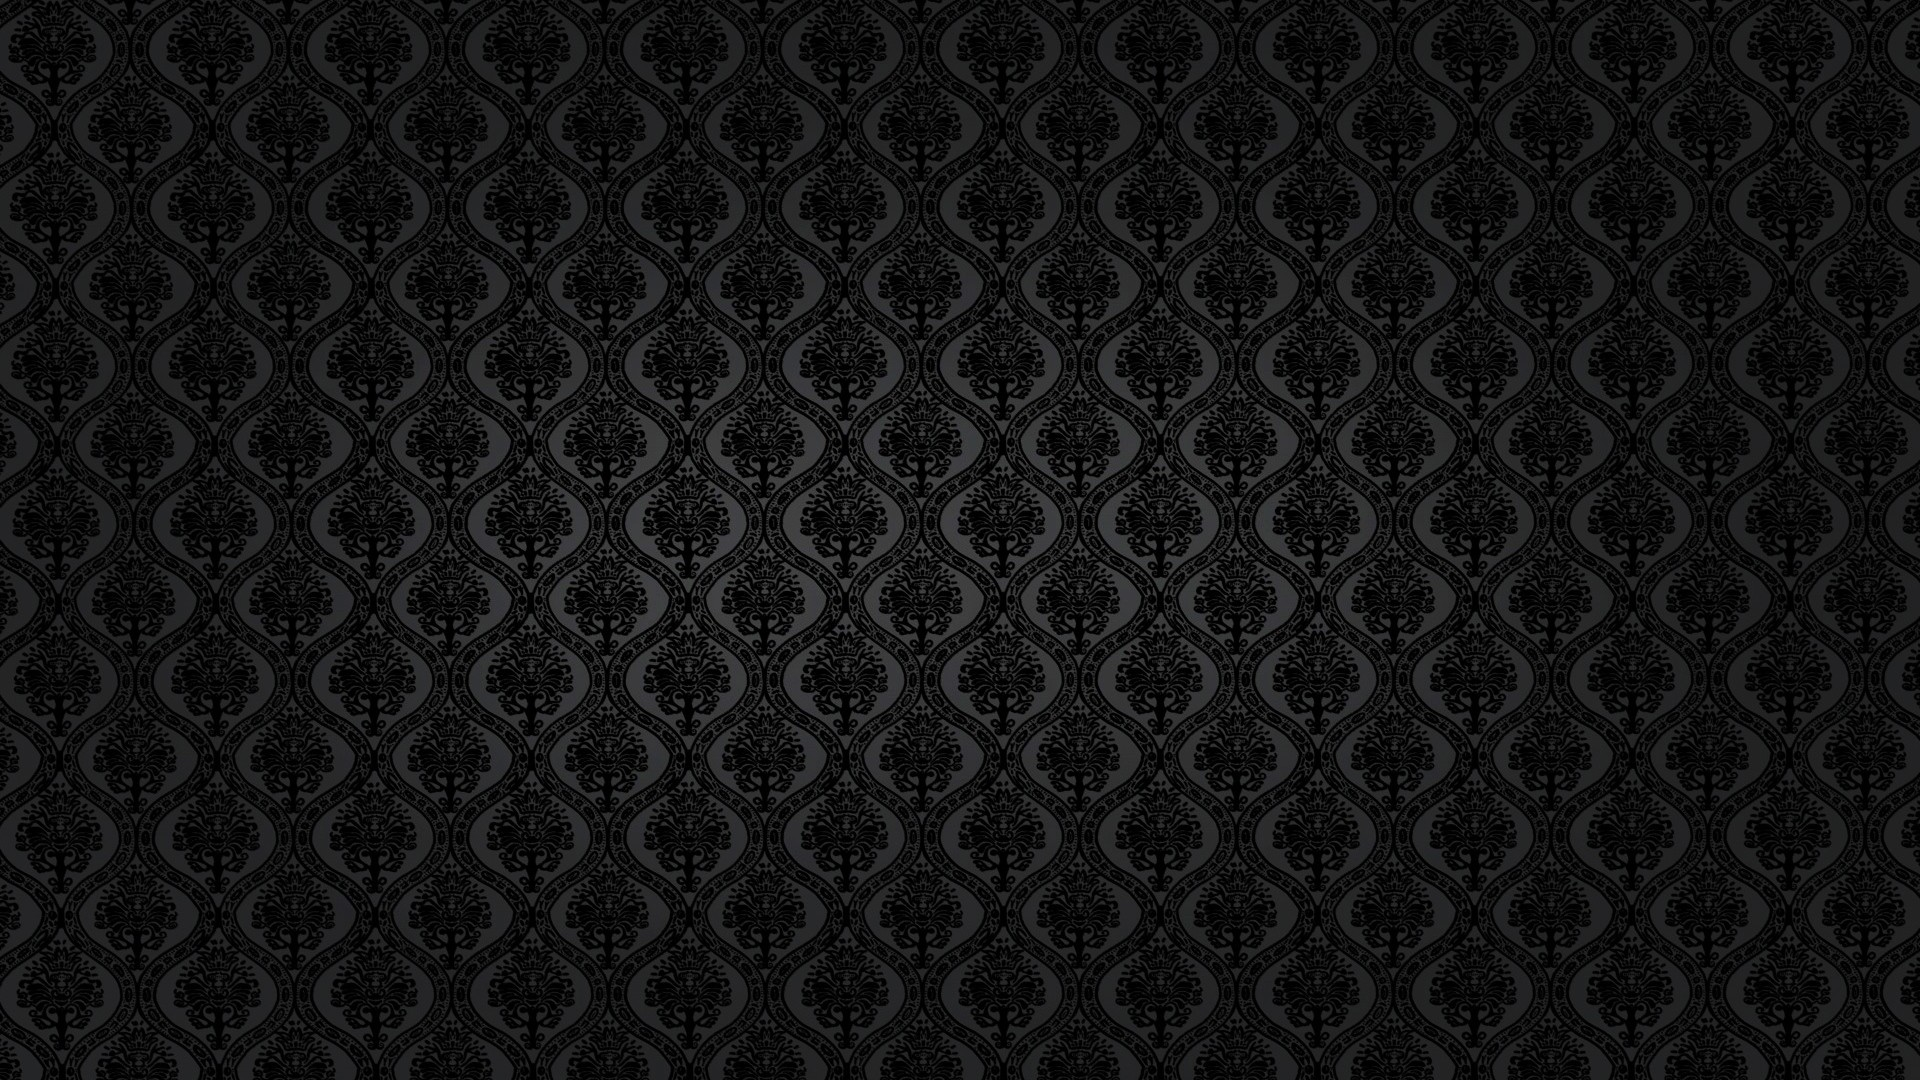 Wallpaper texture, circles, black, dark